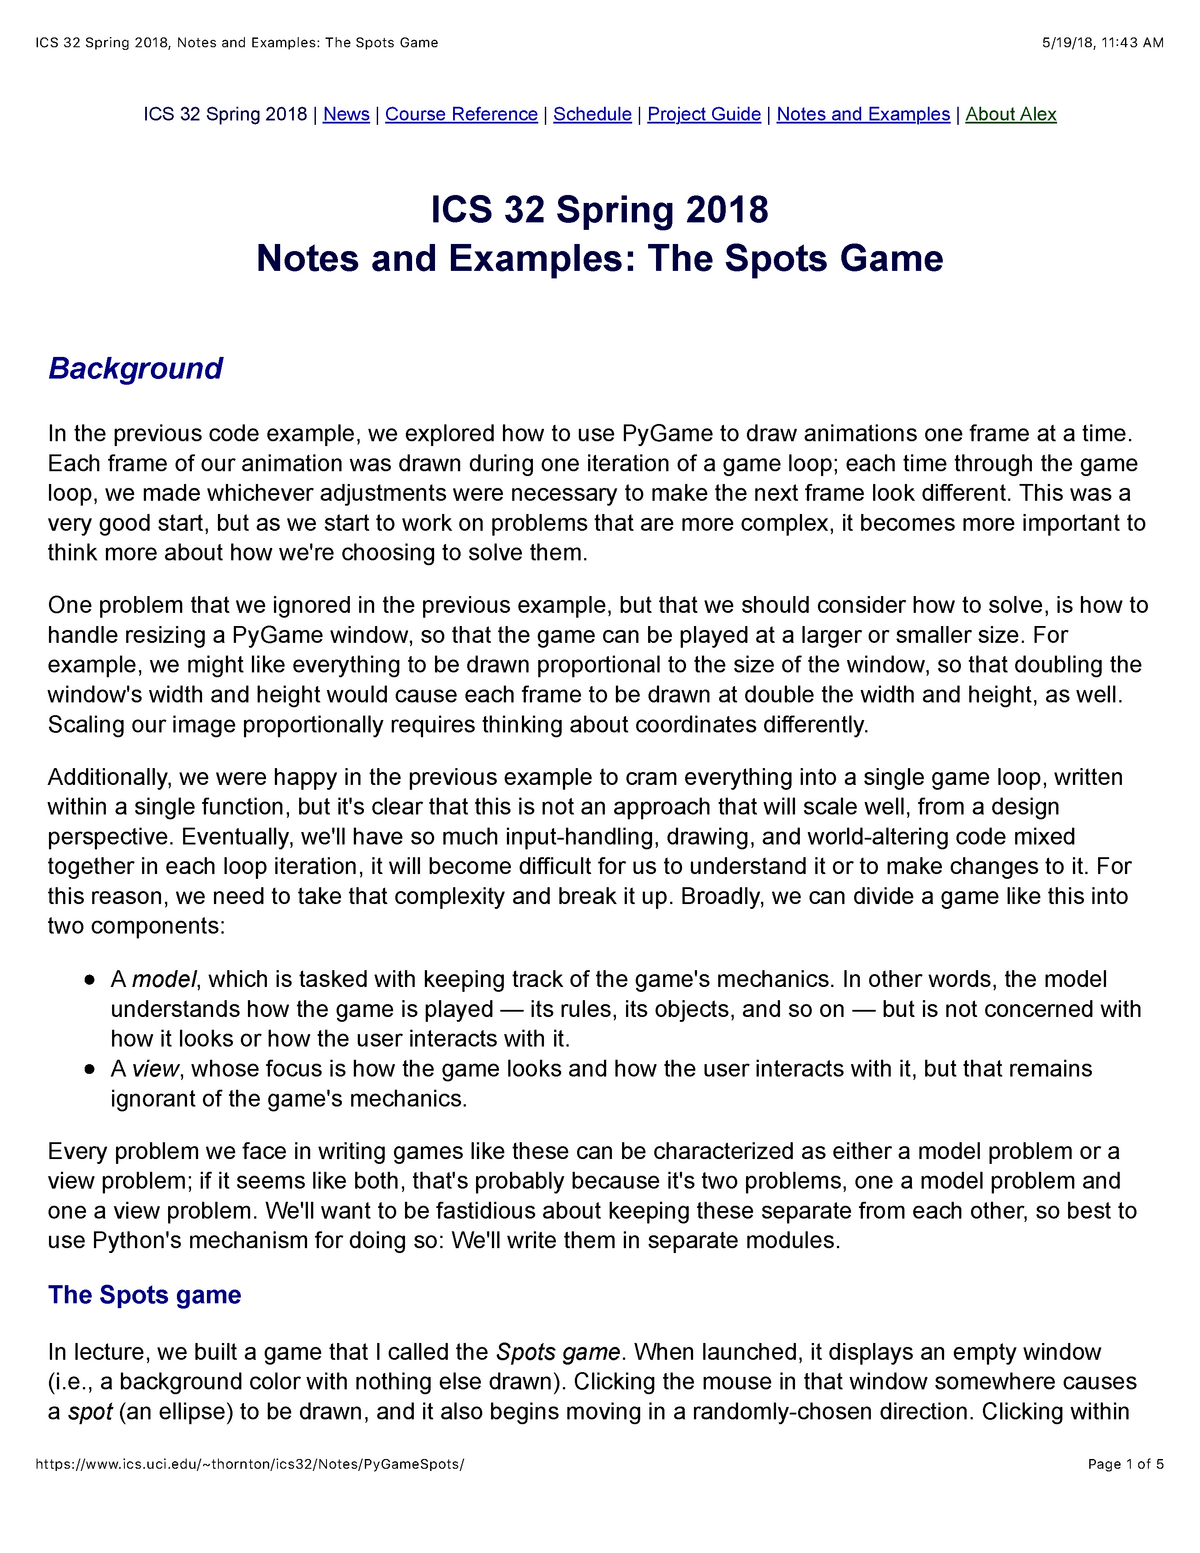 ICS 32 Spring 2018 , Notes and Examples: The Spots Game - ICS 32